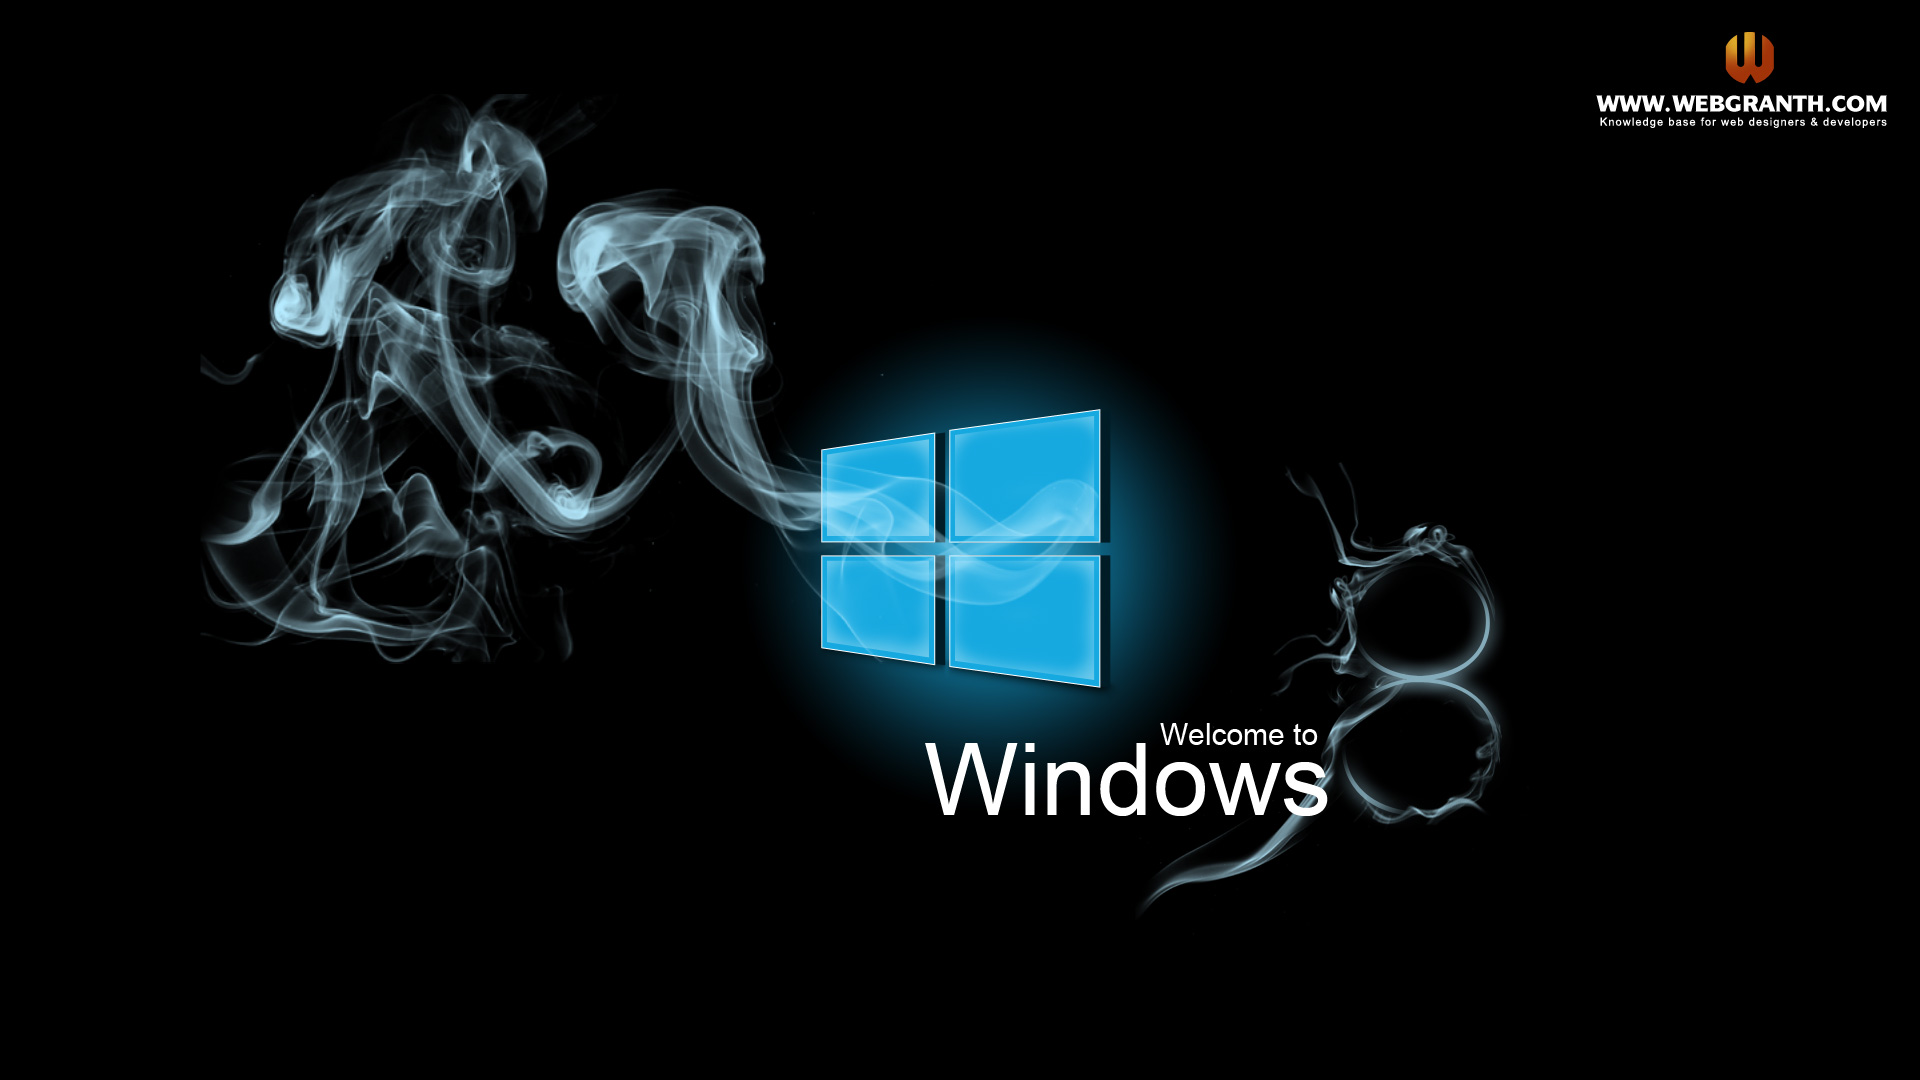 Windows Free Desktop Backgrounds - WallpaperSafari